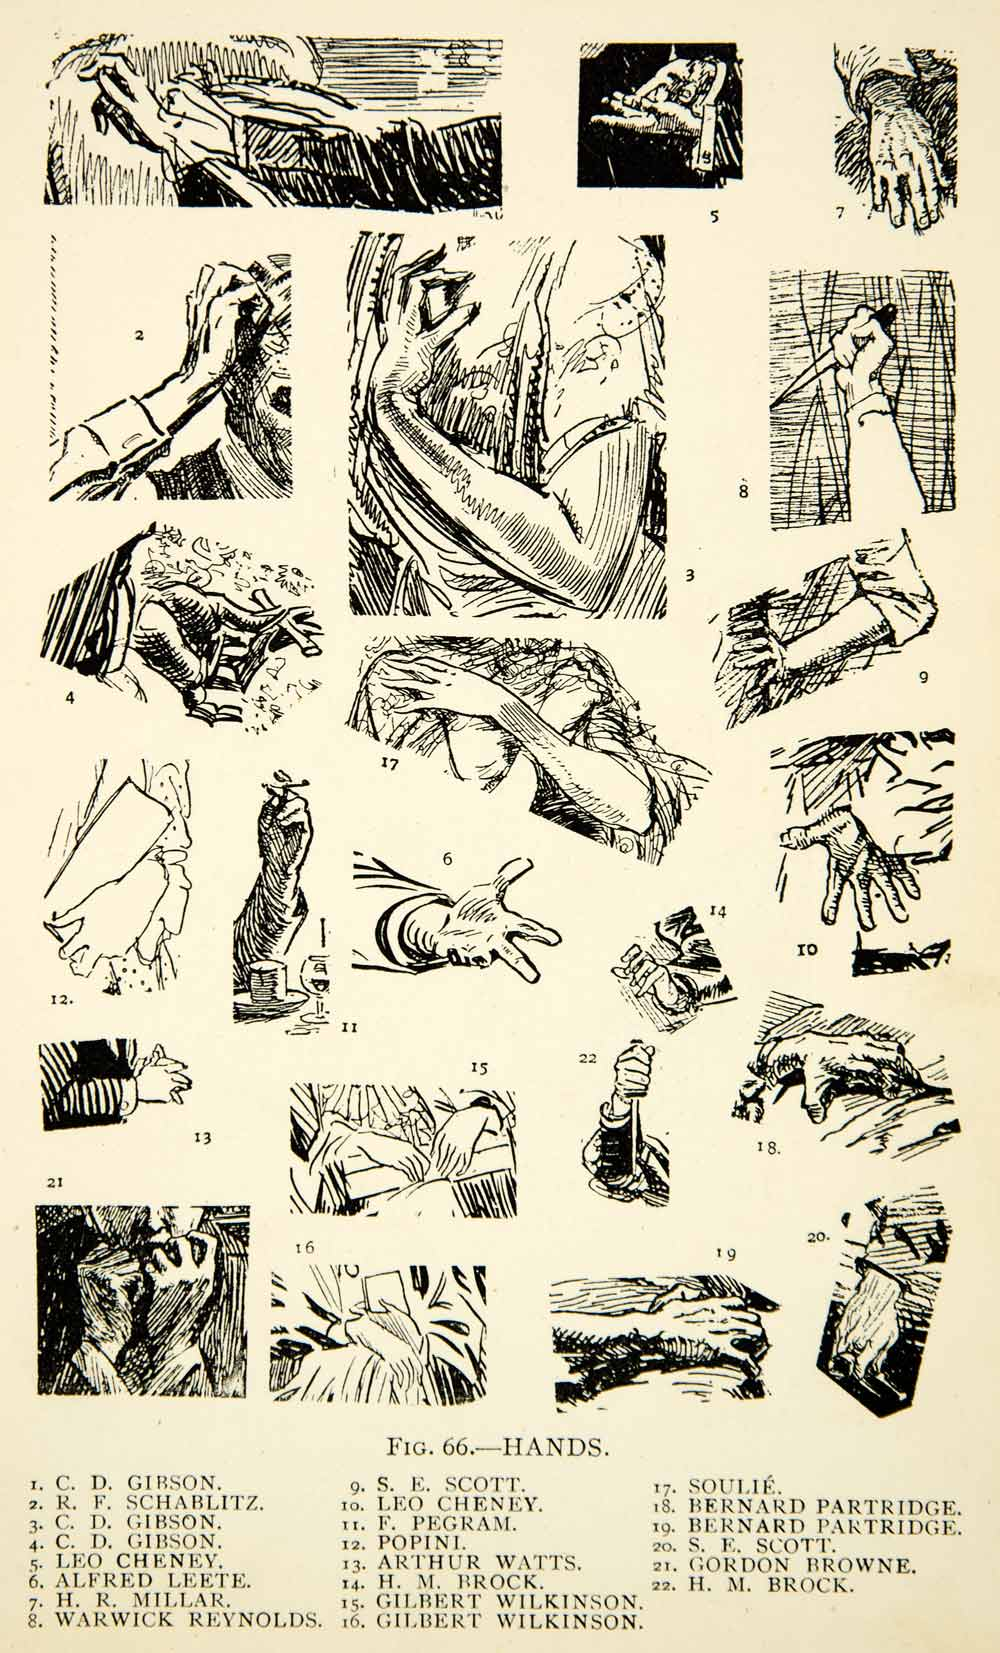 1927 Print Collection Hands Figure Drawing Leo Cheney S E Scott C D Gibson  XDH1